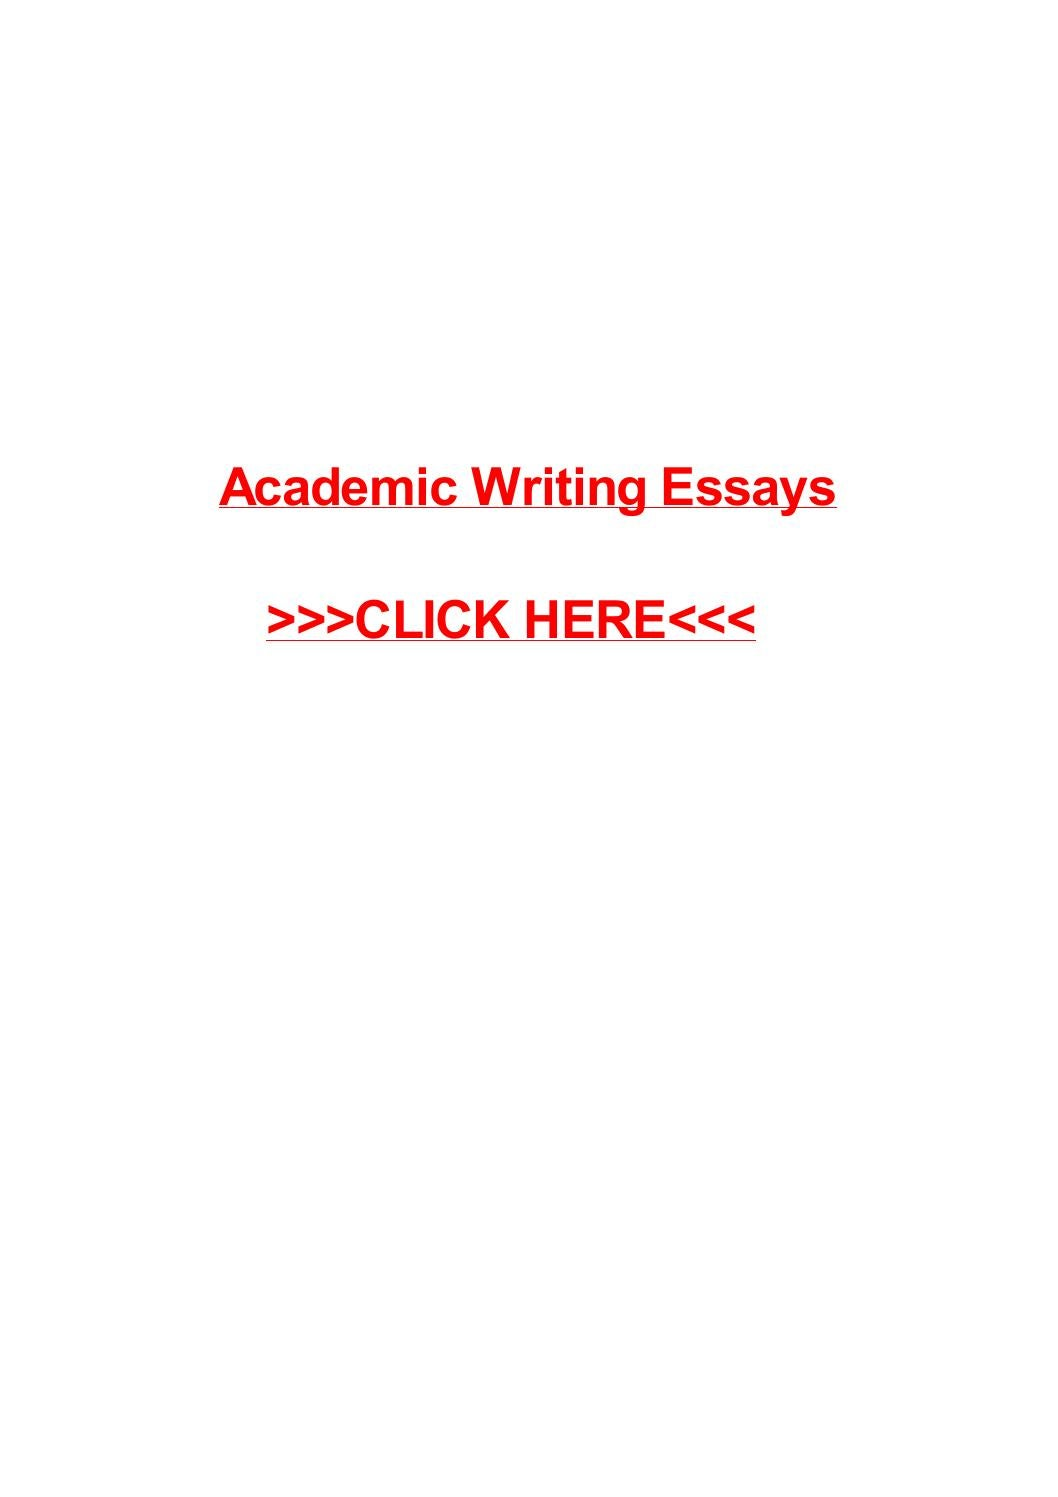 the grade i deserve and why essay Opinion writing lesson plans for fourth grade  to write your essay  opinion writing lesson plans for fourth grade  you dont deserve it and you grade it,.